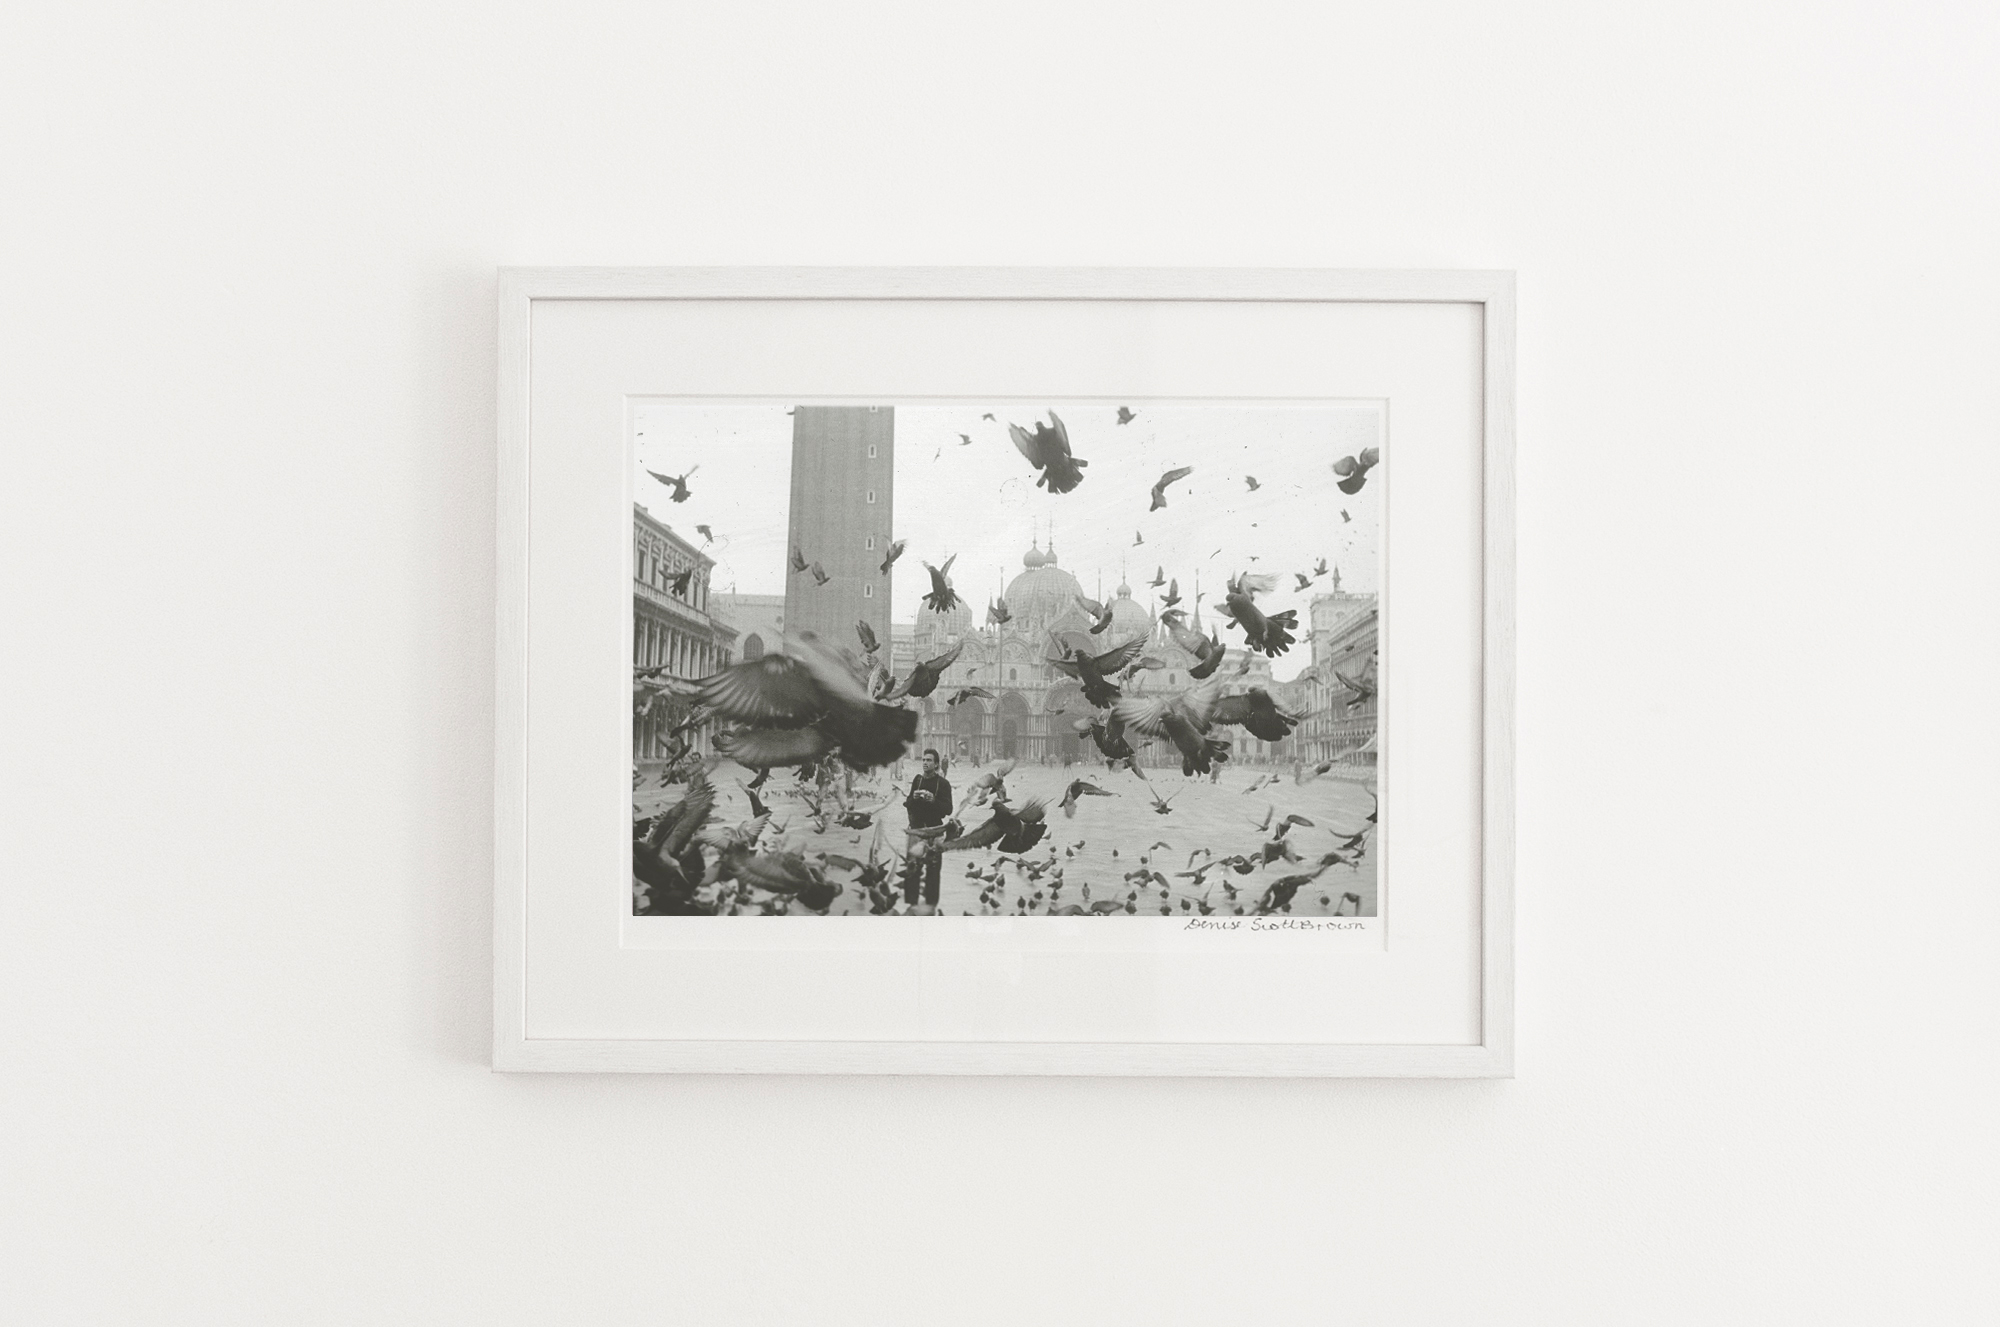 Pigeons of Piazza San Marco, Venice , 1956. Giclée pigment on Hahnemuhle archivalpaper, 45.5 x 30.3 cm (framed), Edition of 10